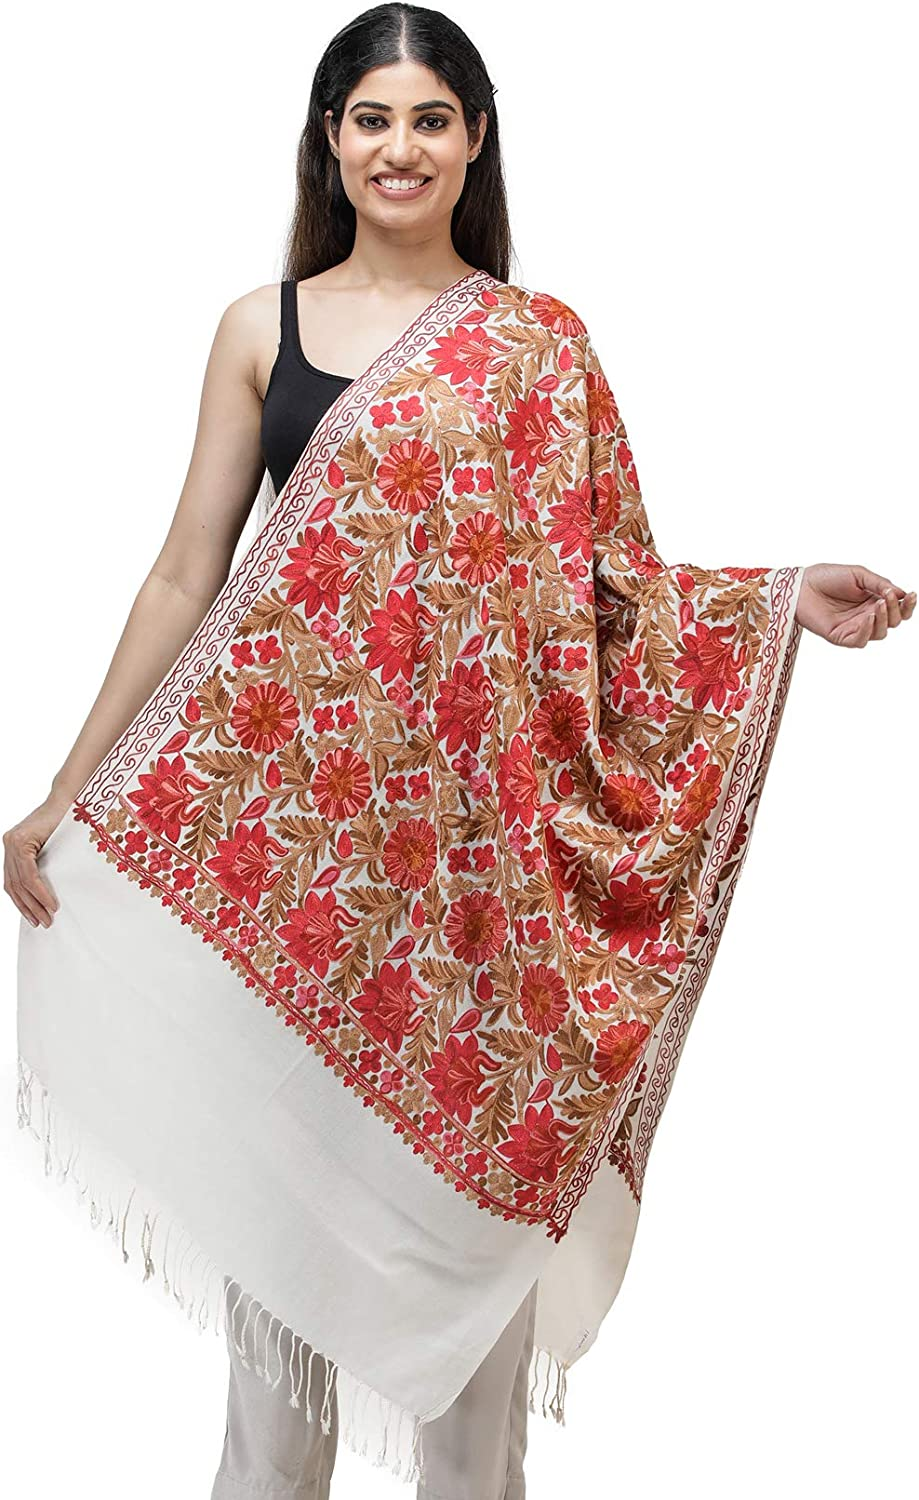 Exotic India Stole from Kashmir with Ari Embroidered Flowers All-Over